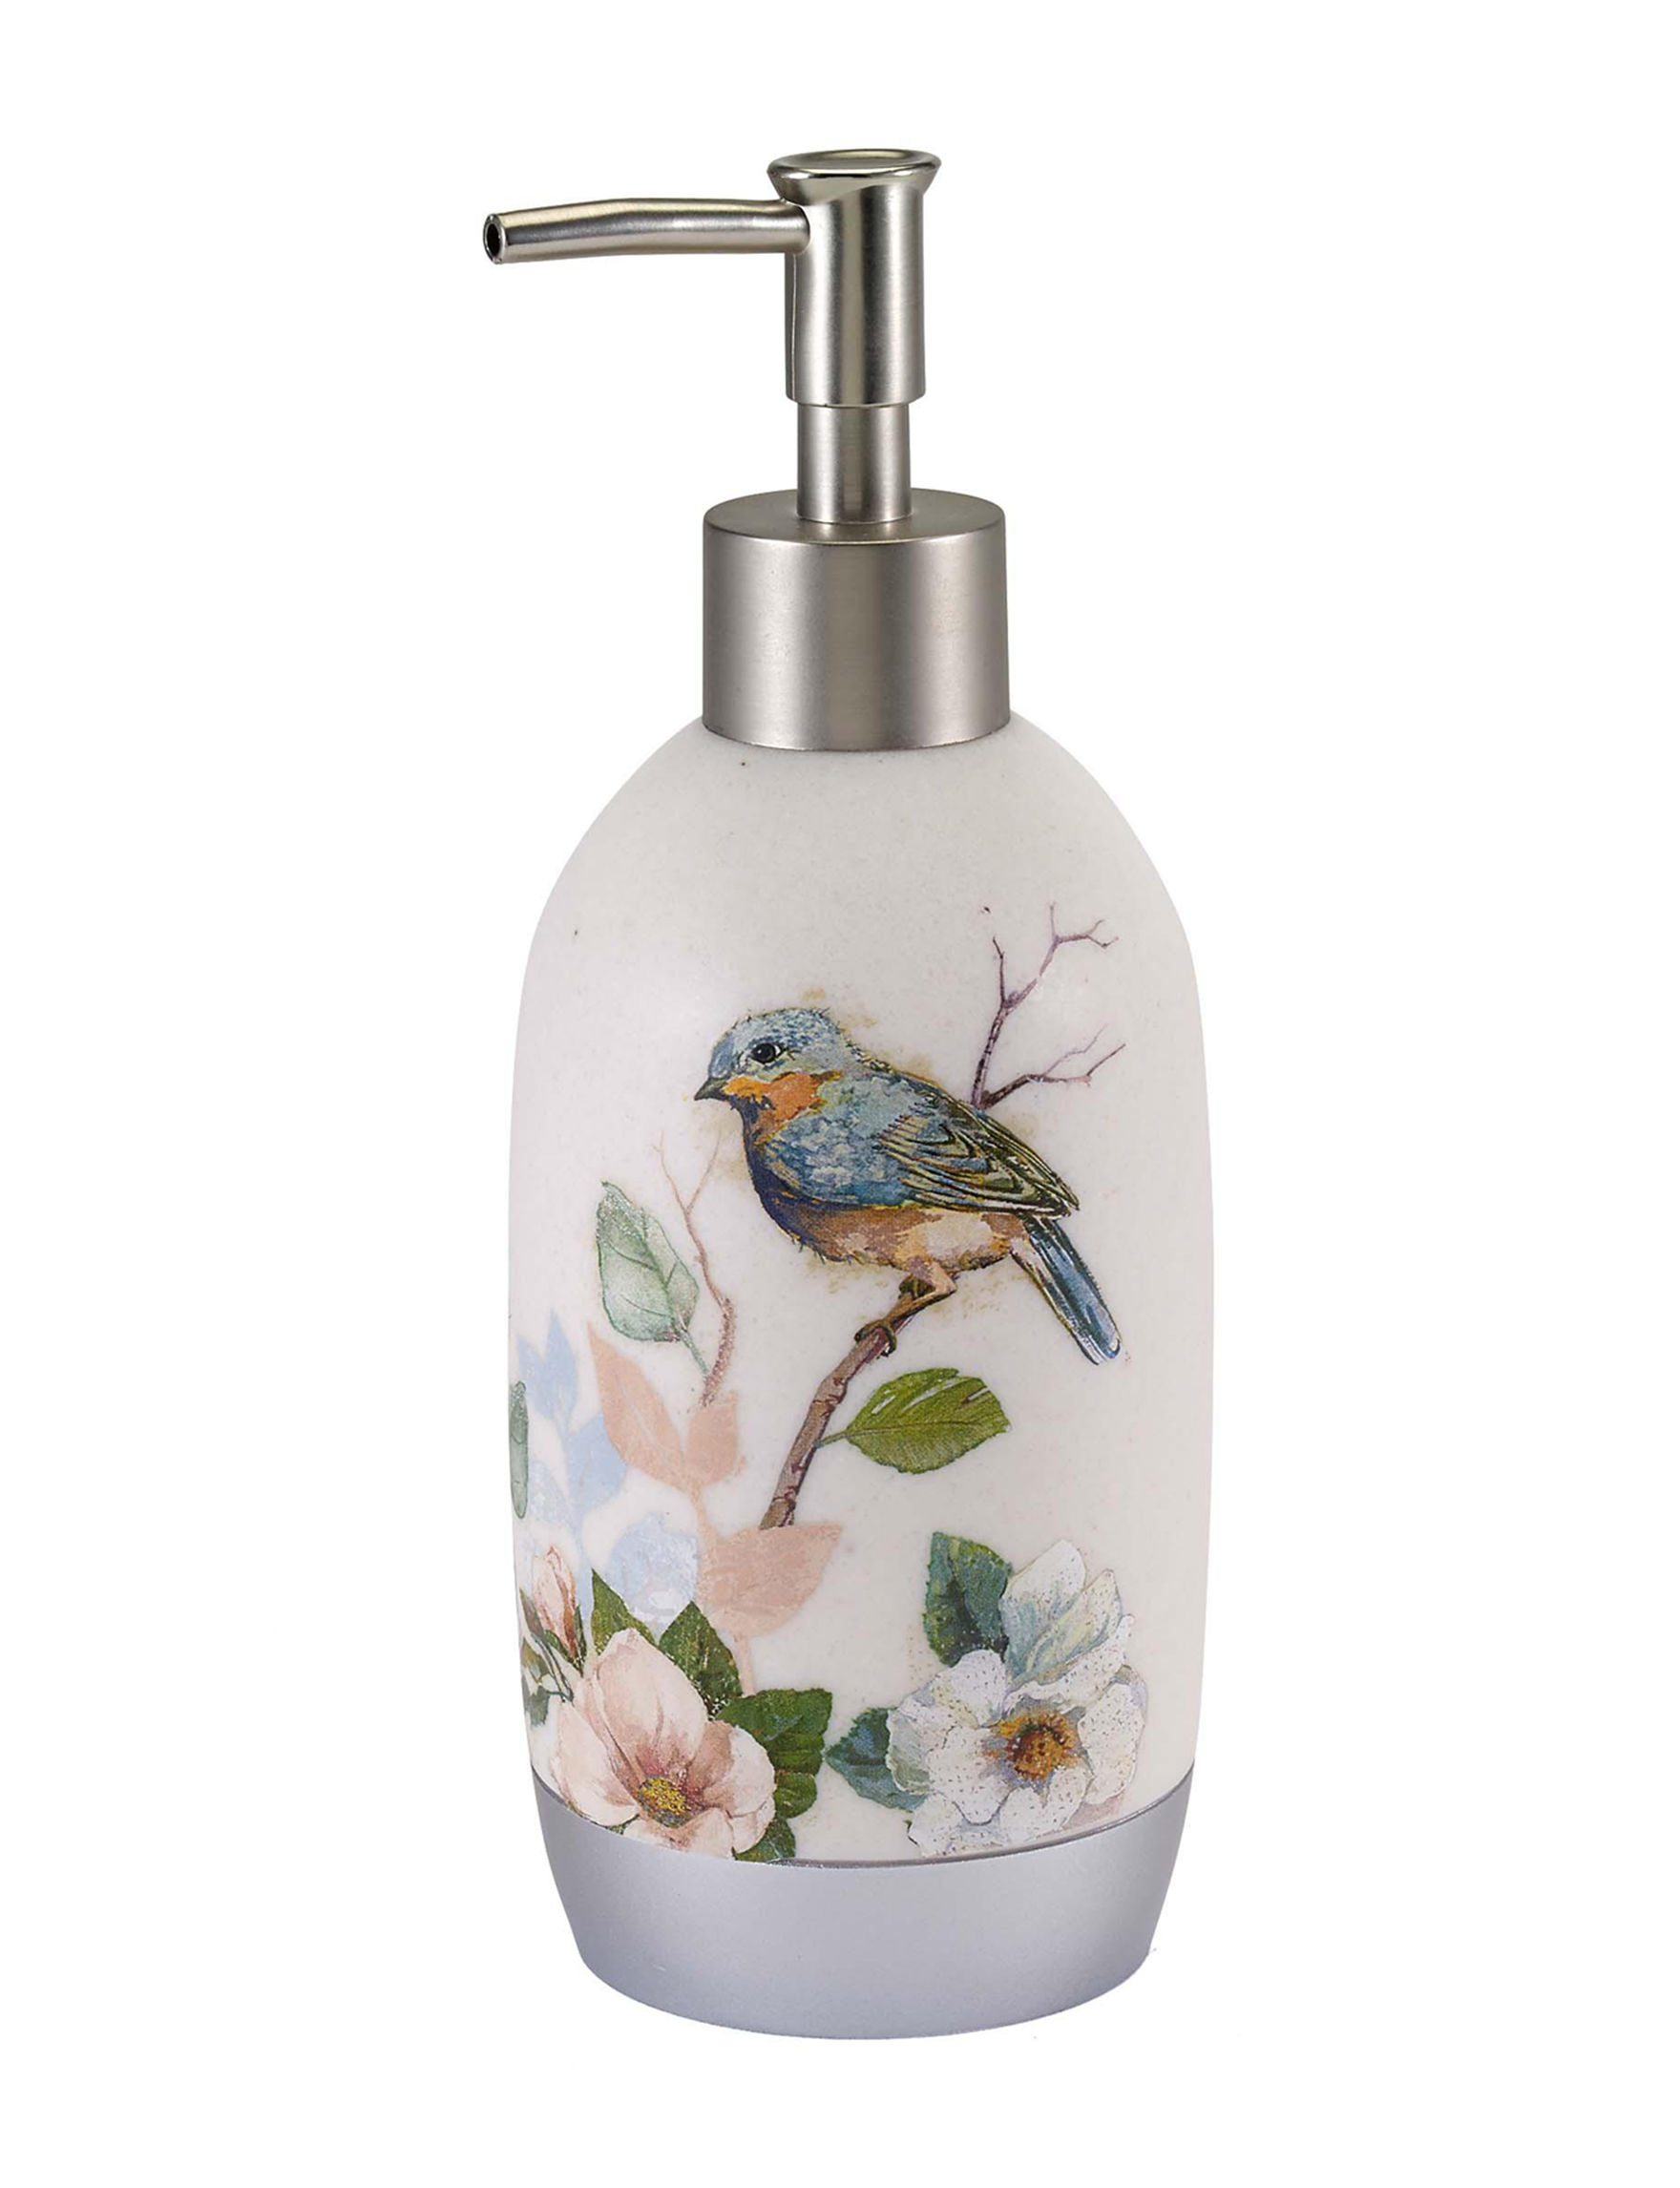 Avanti  Soap & Lotion Dispensers Bath Accessories